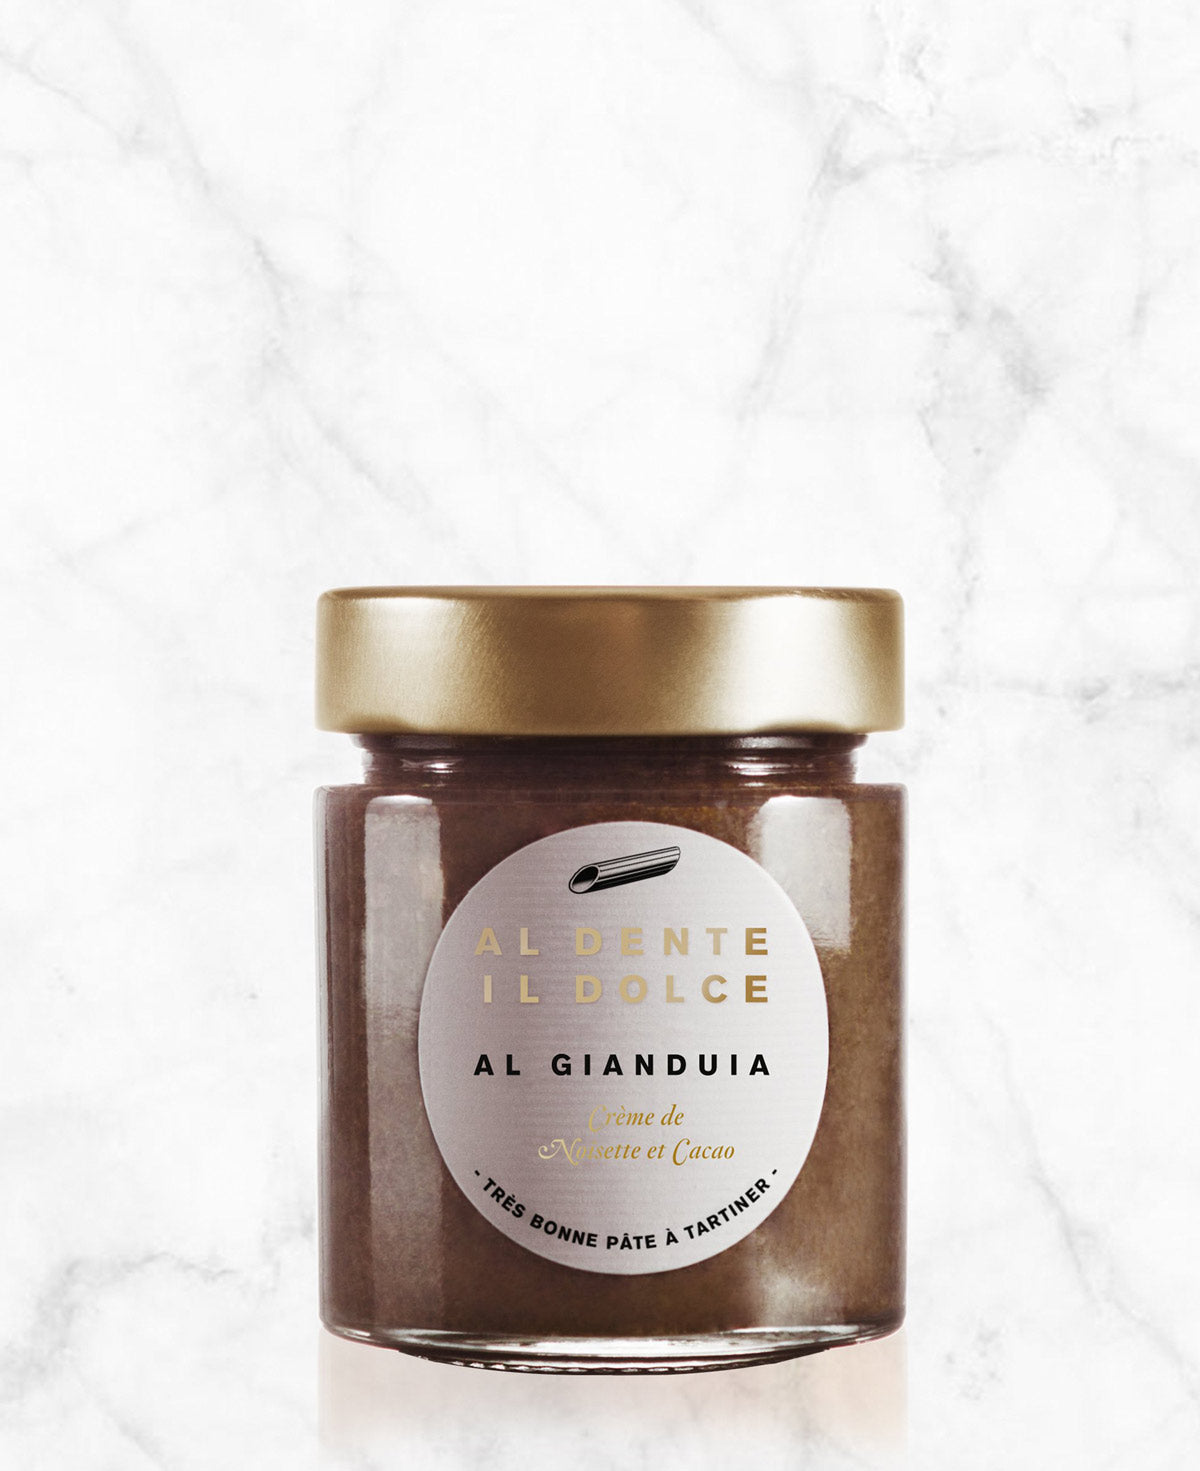 Al Gianduia